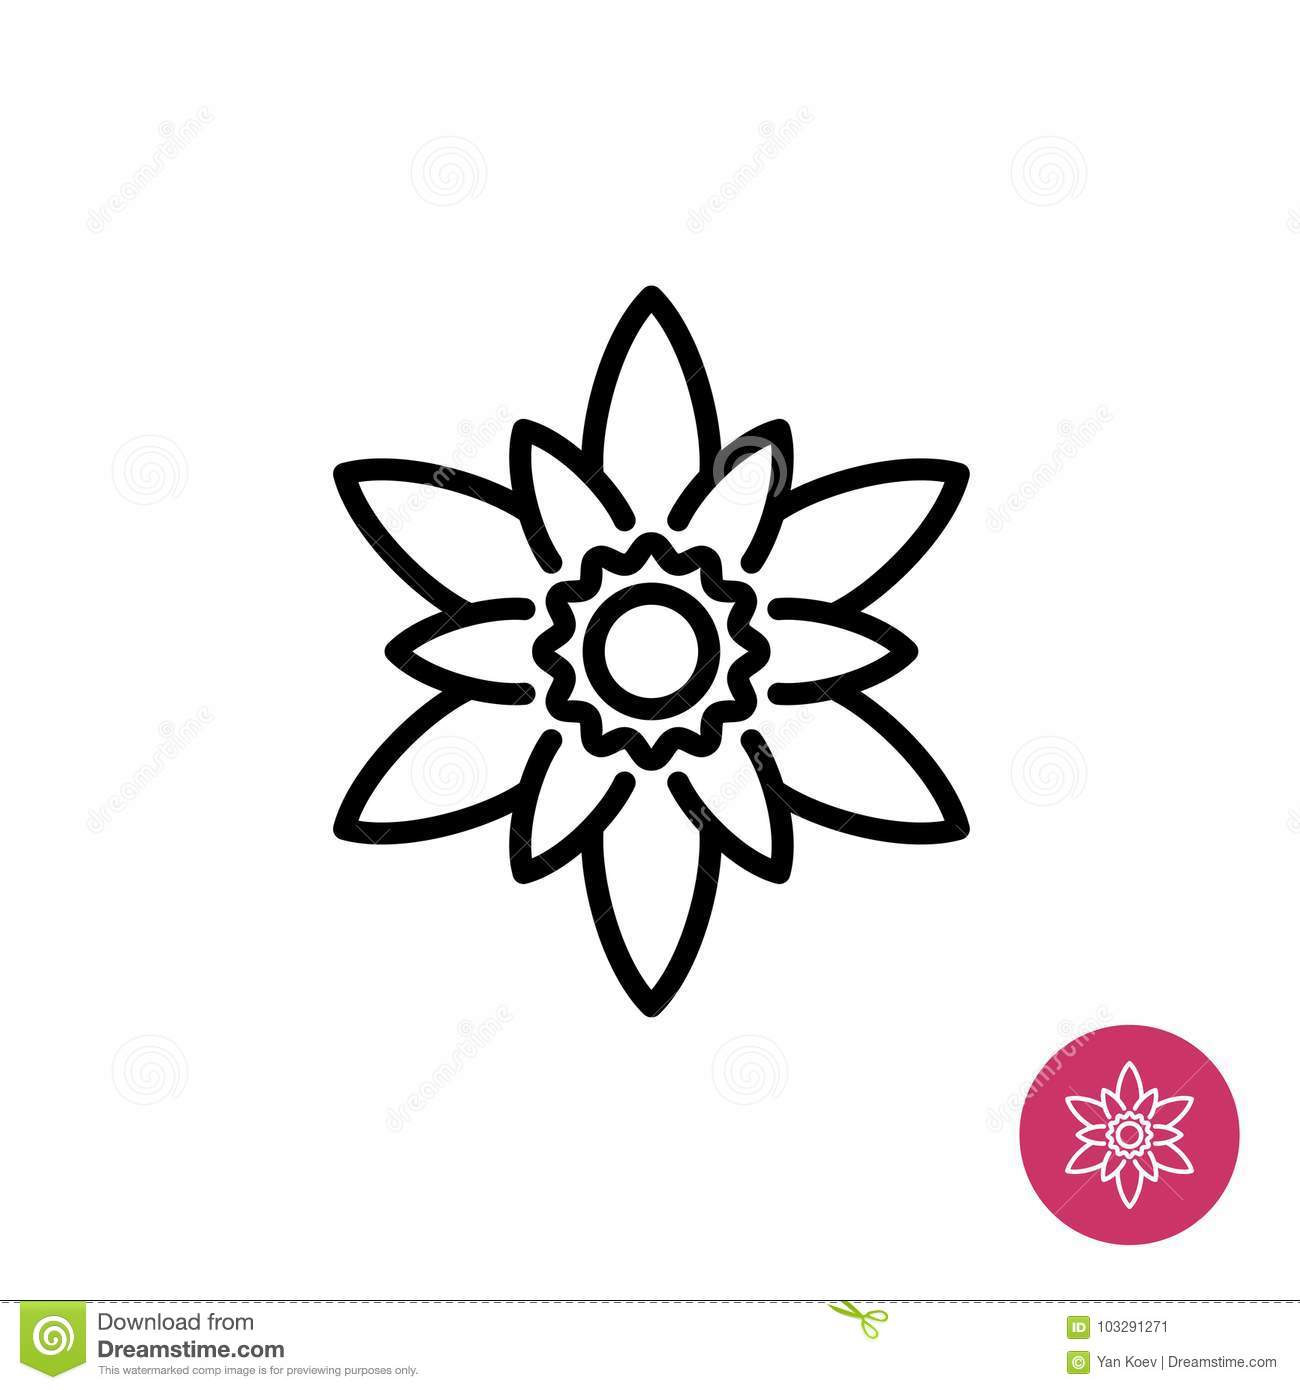 Lotus flower symbol stock vector illustration of outline 103291271 lotus flower symbol mightylinksfo